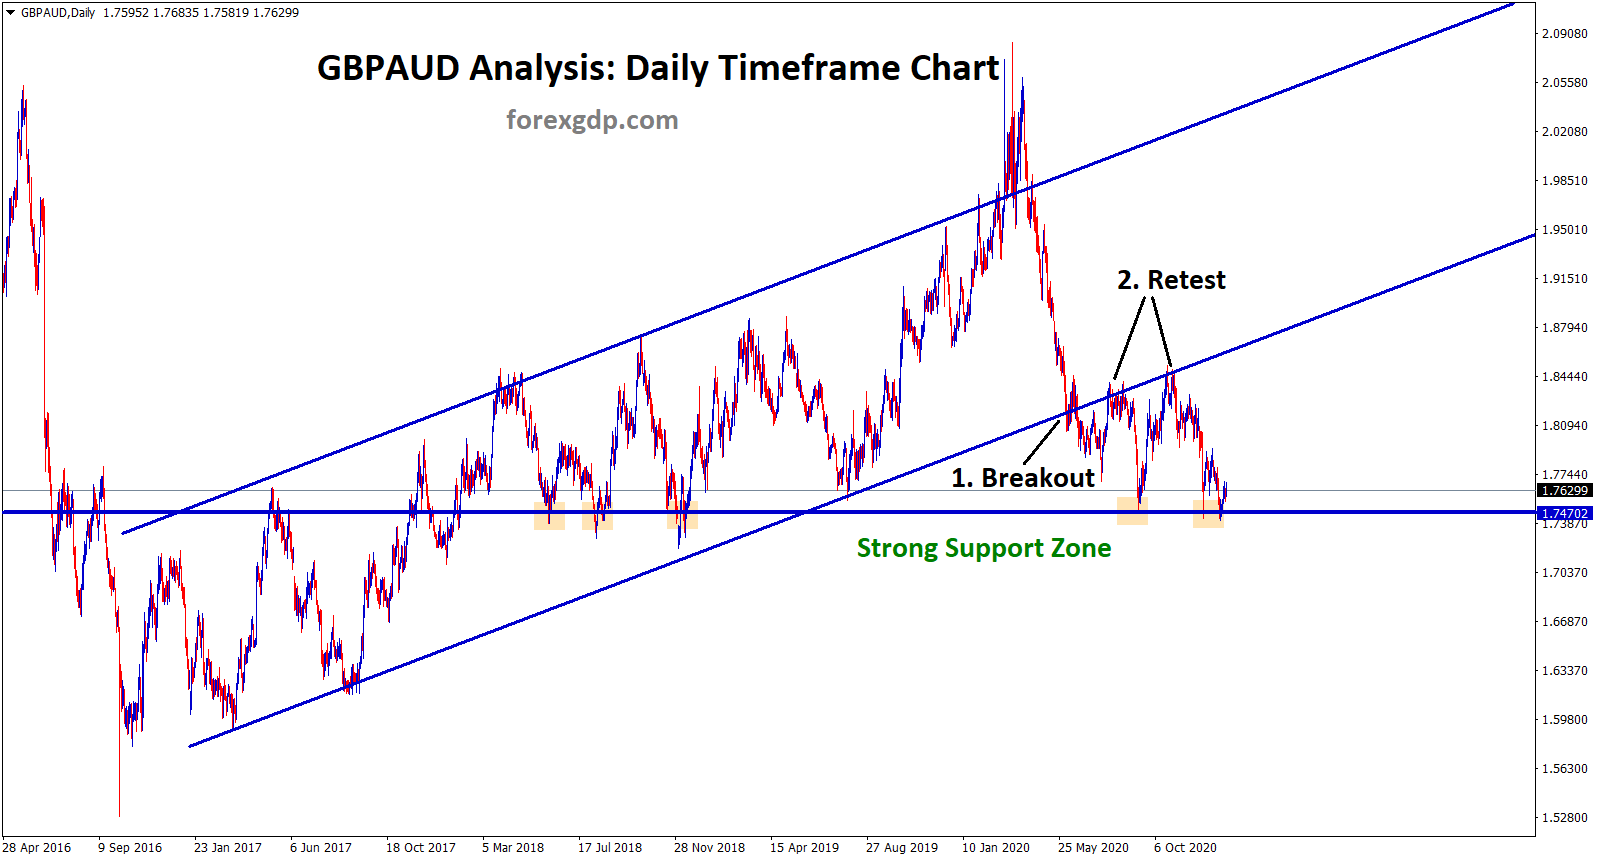 gbpaud at the strong support breaking the uptrend line